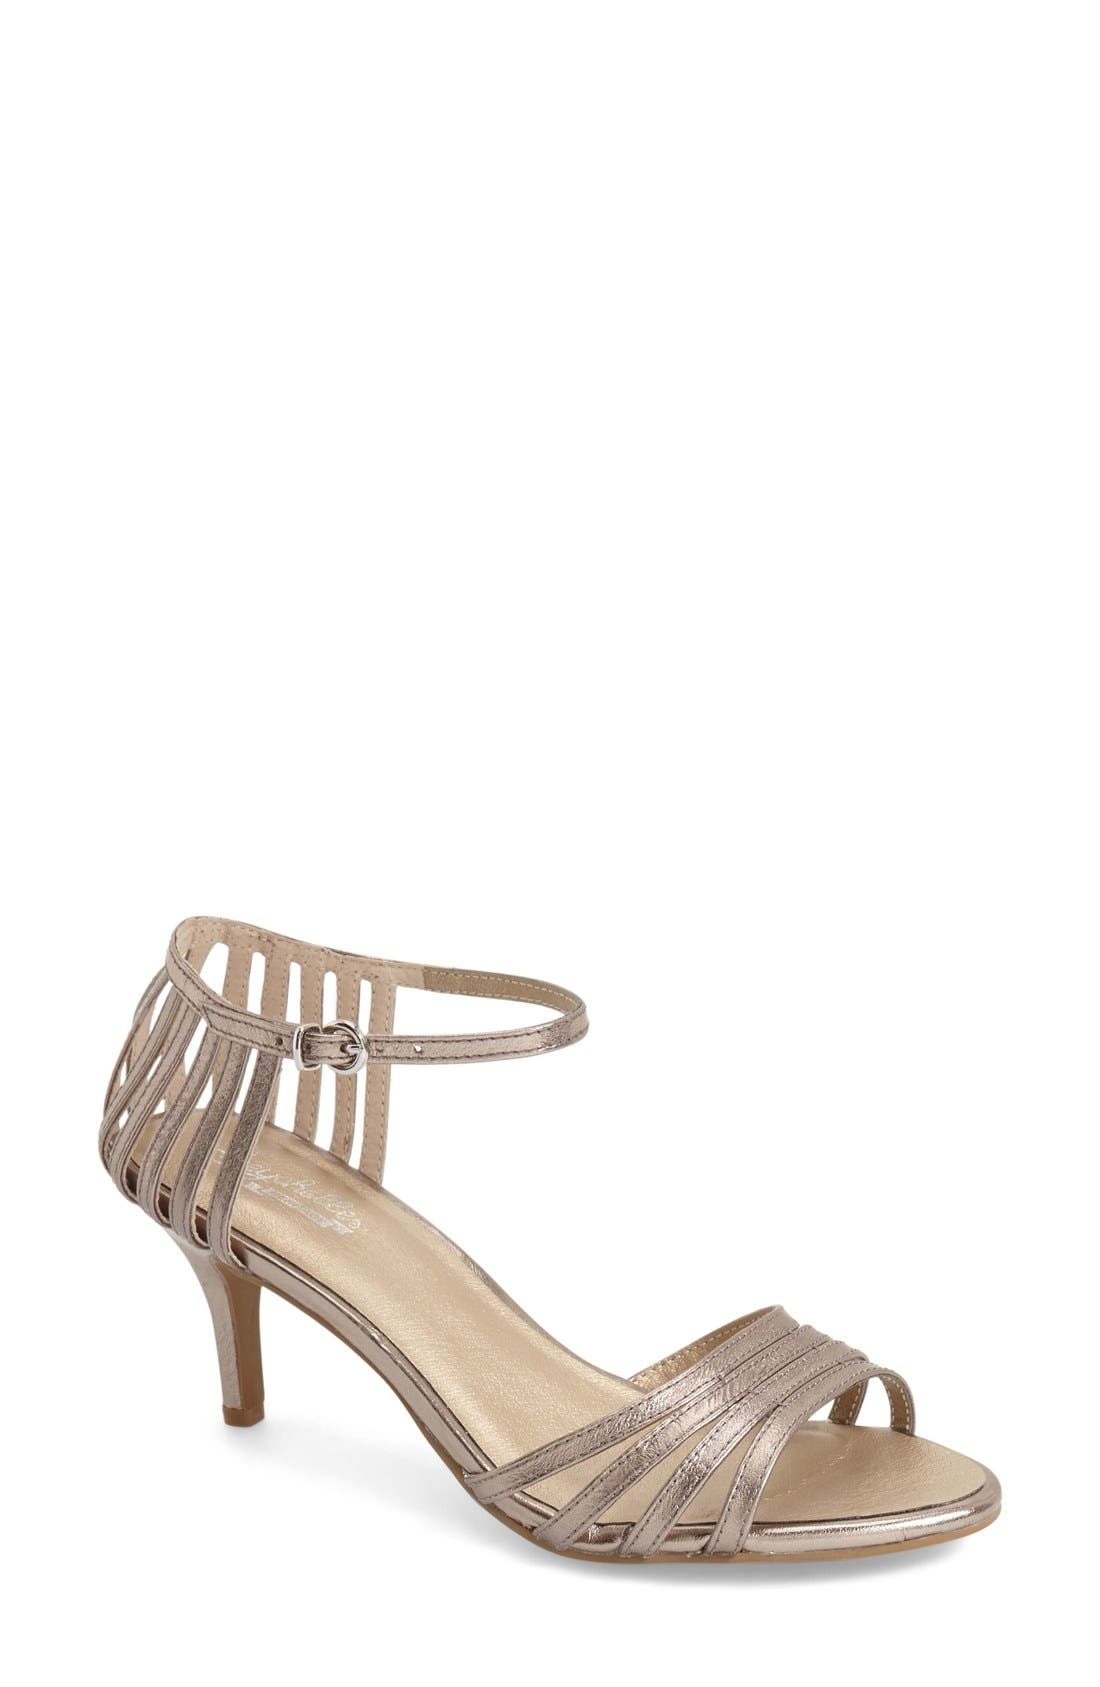 'Song and Dance' Ankle Strap Pump,                             Main thumbnail 1, color,                             022